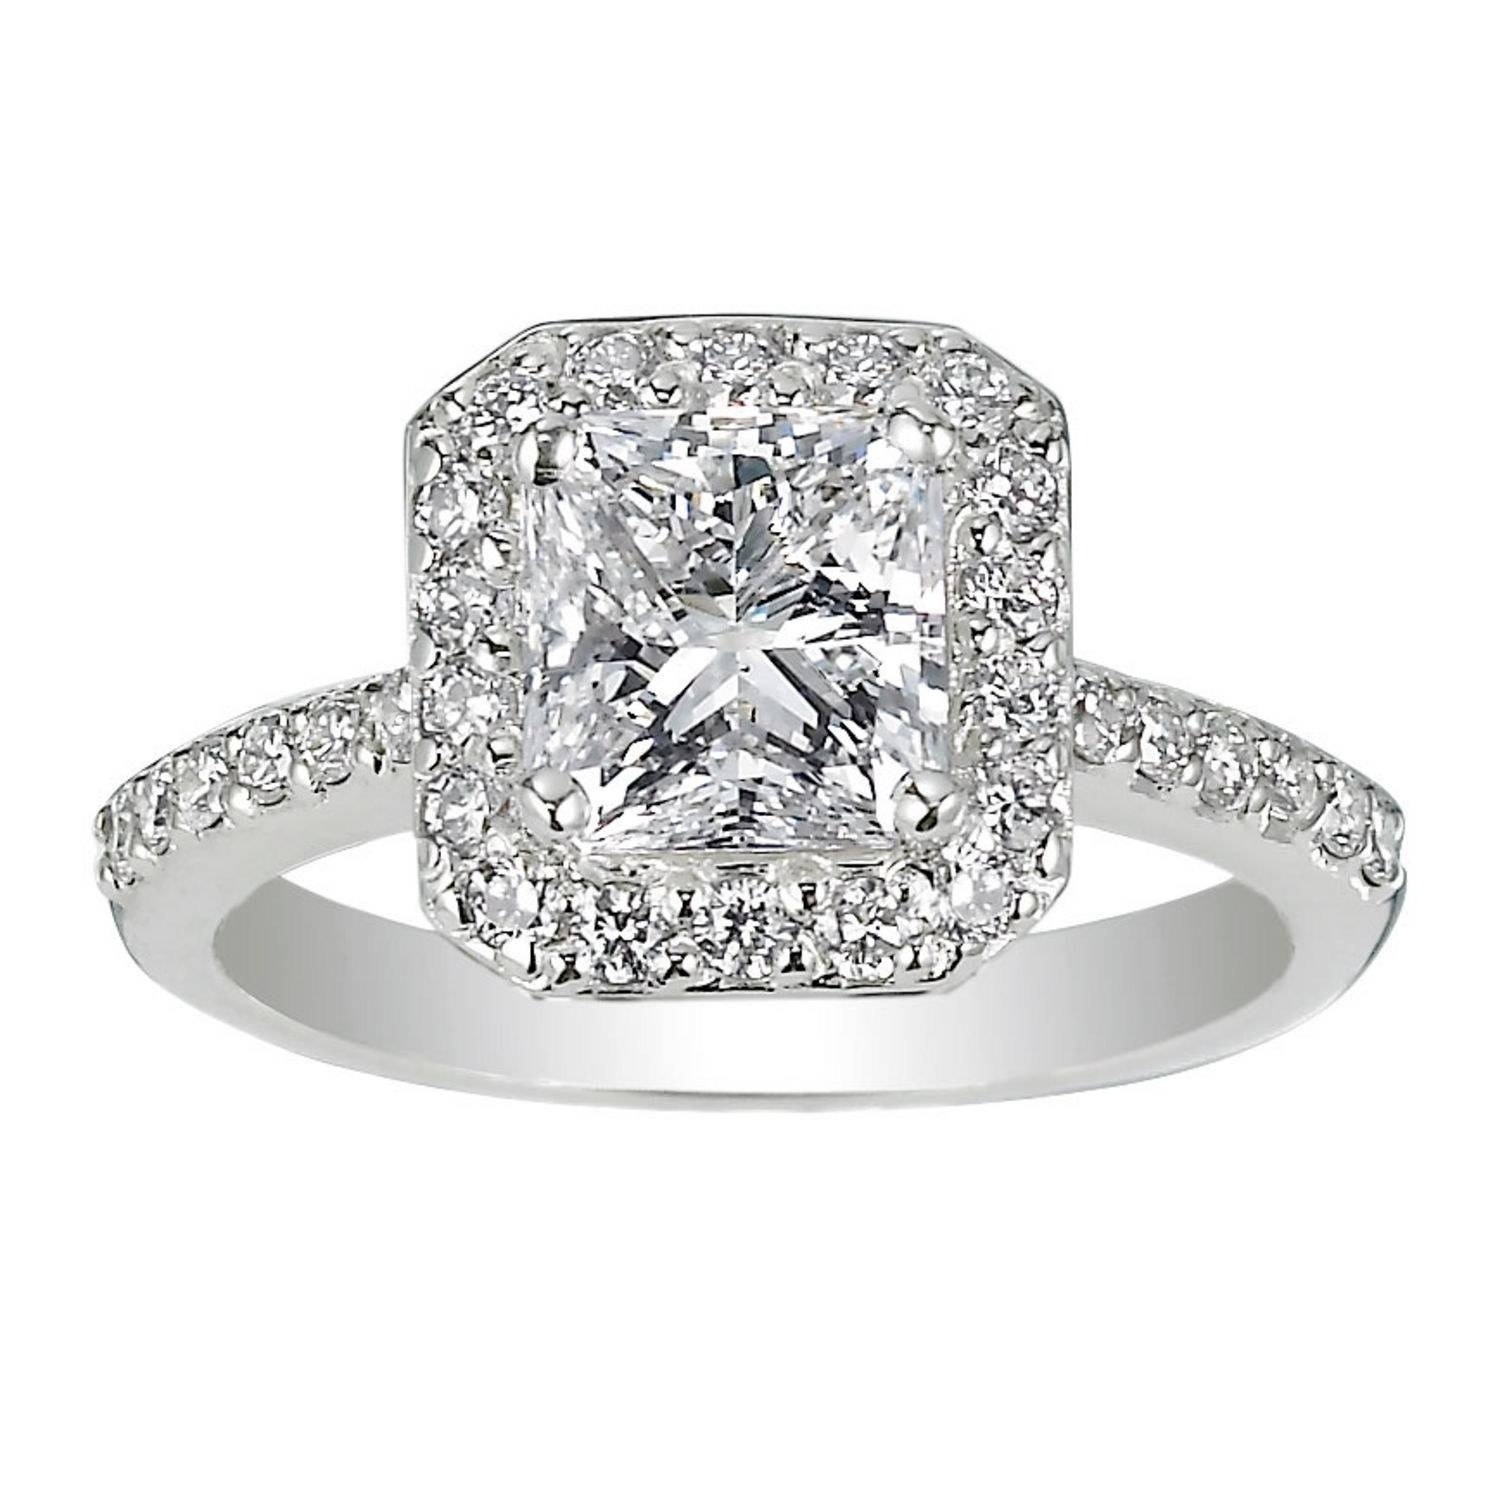 62 Diamond Engagement Rings Under $5,000 | Glamour Pertaining To Wedding Rings With Engagement Rings (View 1 of 15)